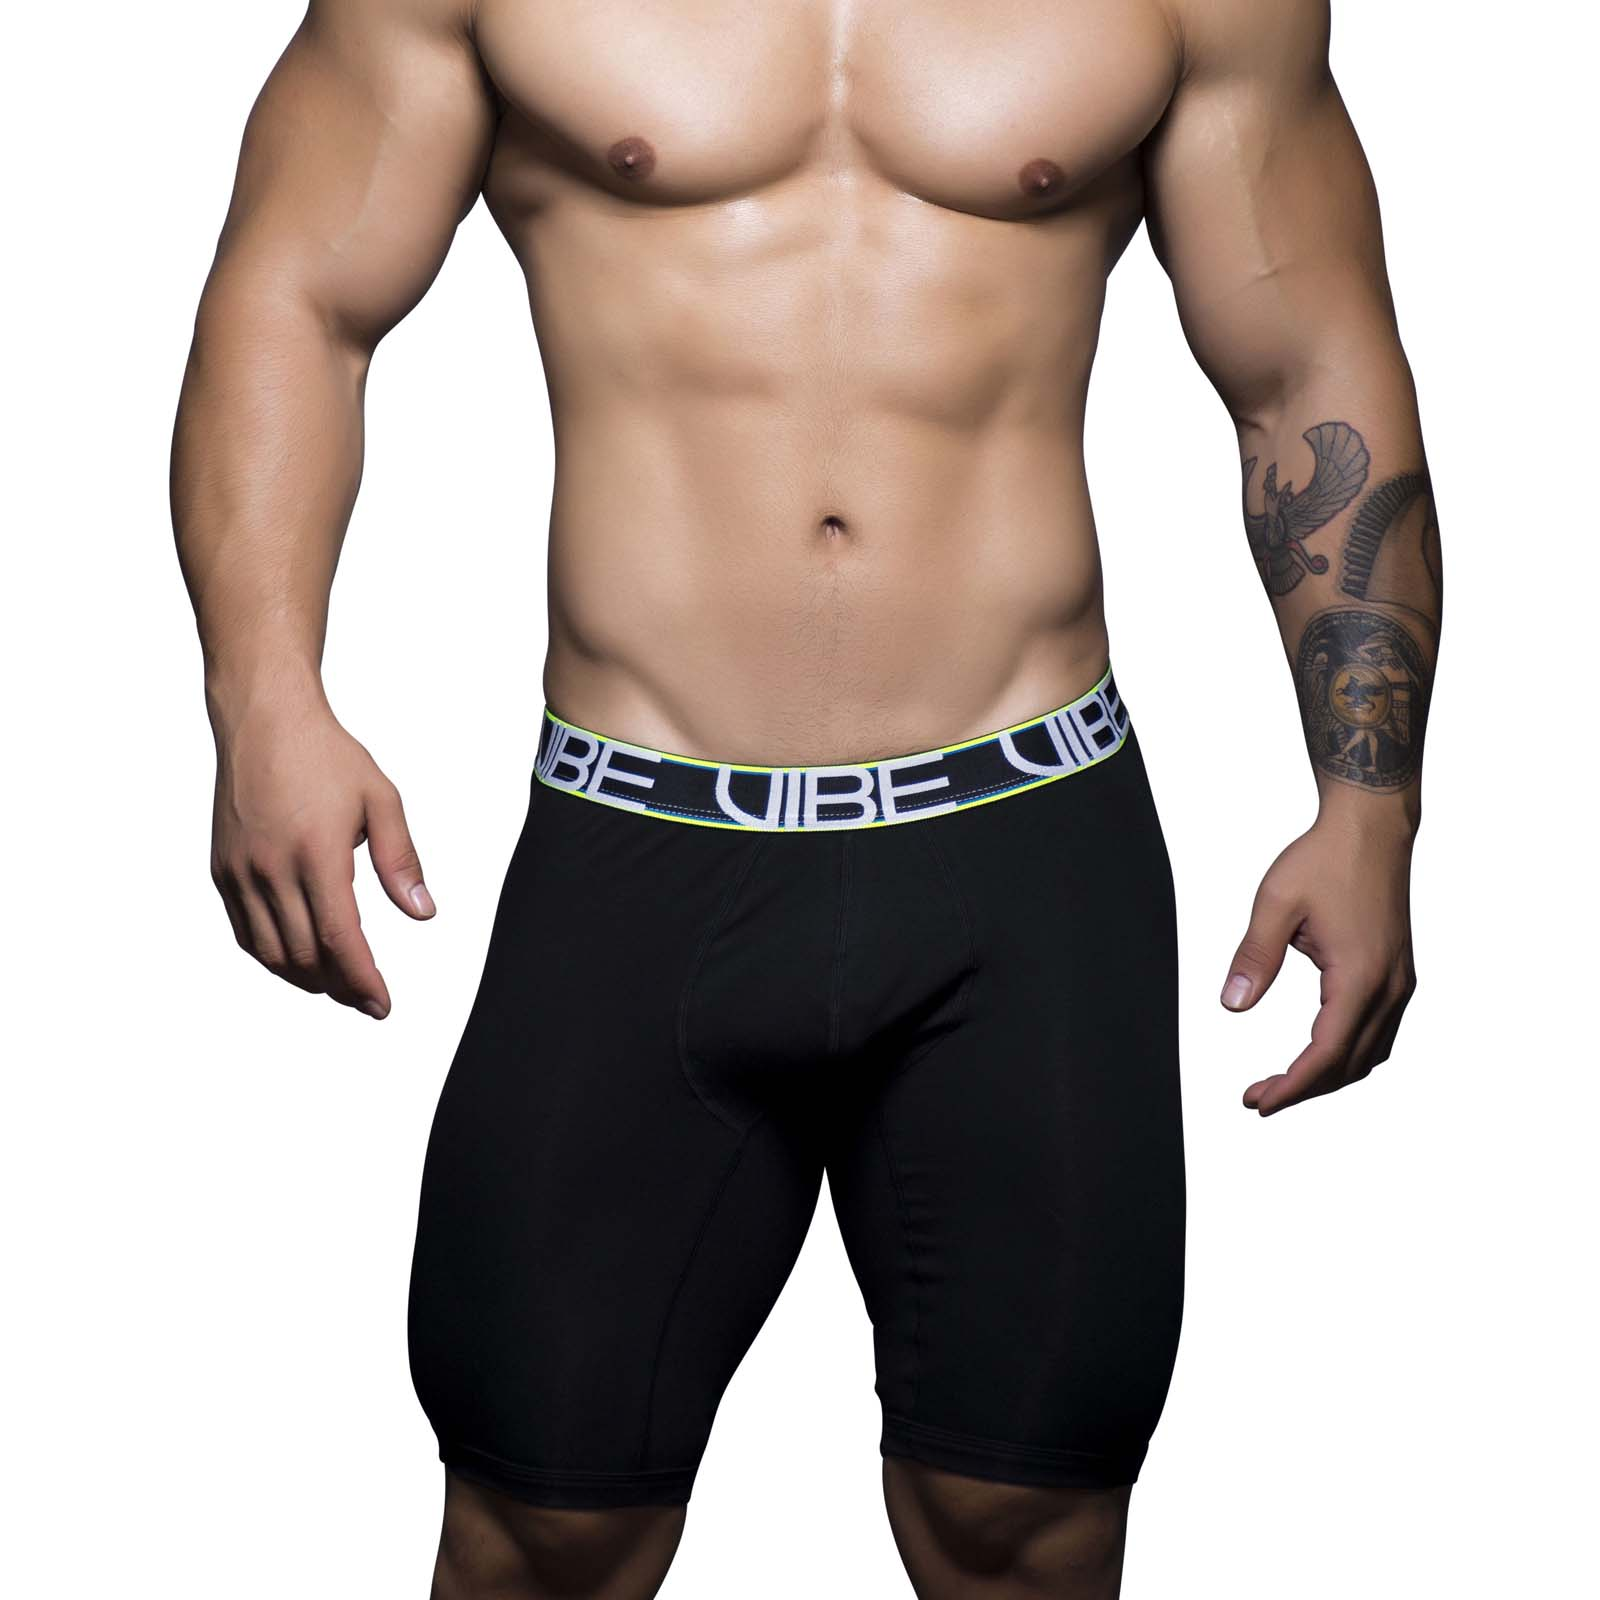 Boxer long Andrew Christian Vibe Sport & Workout Action  90115